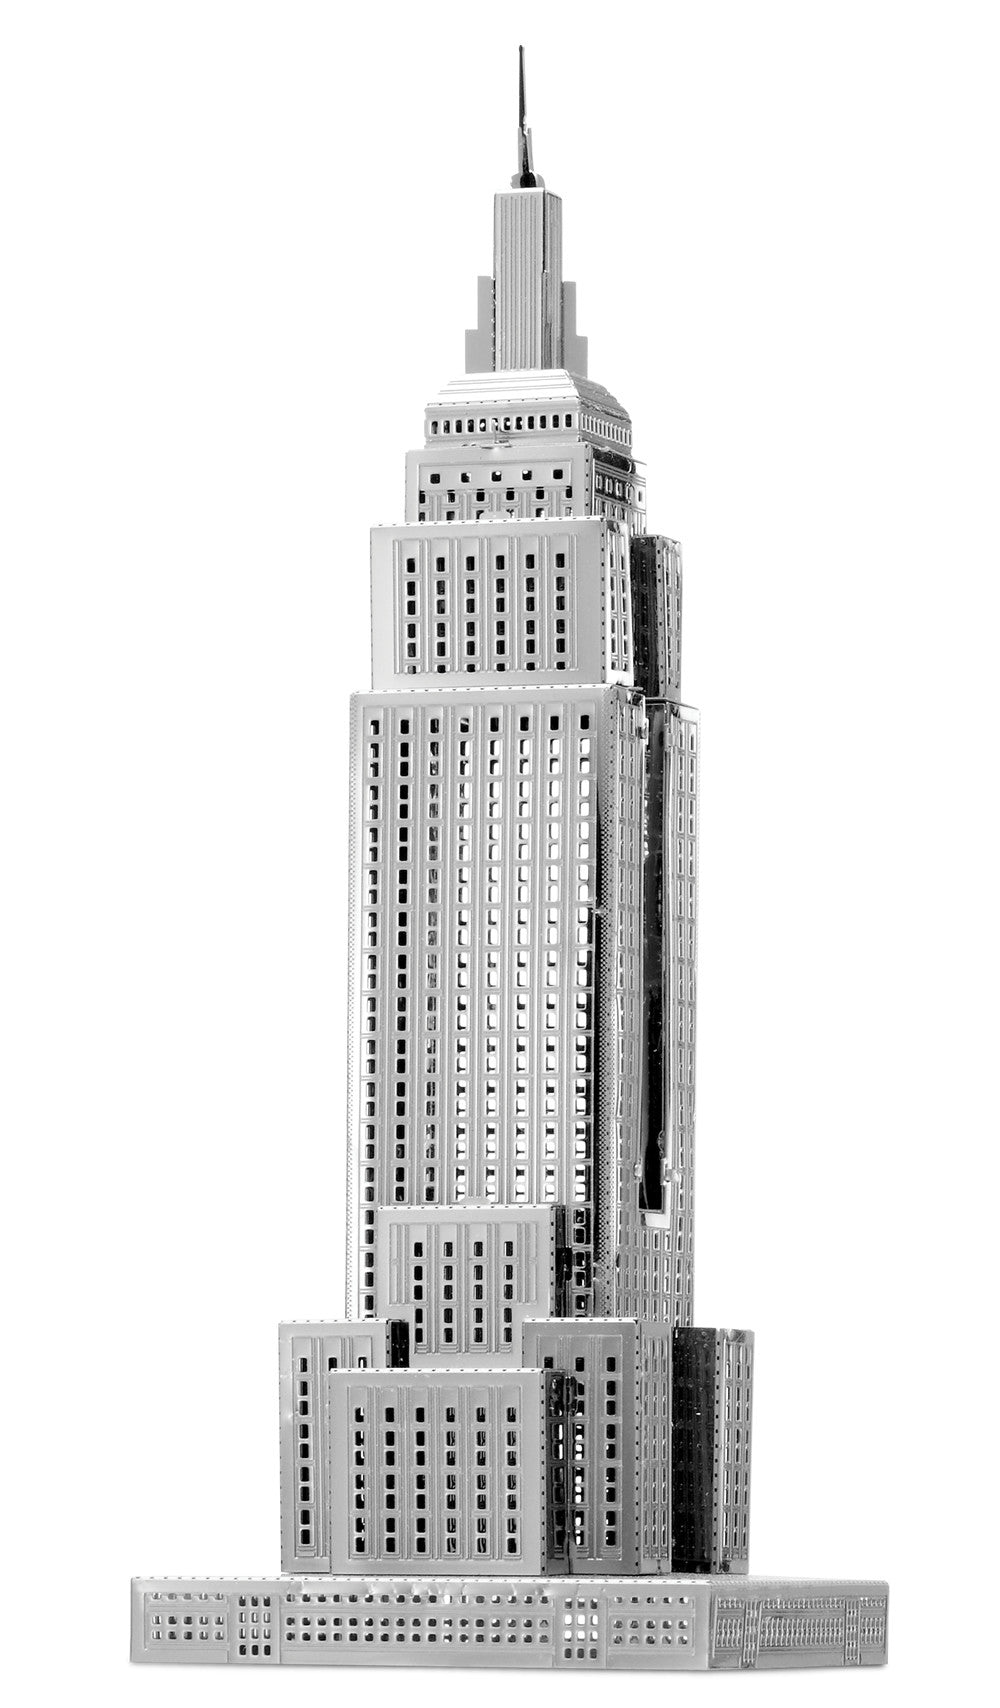 Fascinations Metal Earth 3D ICONX Laser Cut Model Empire State Building